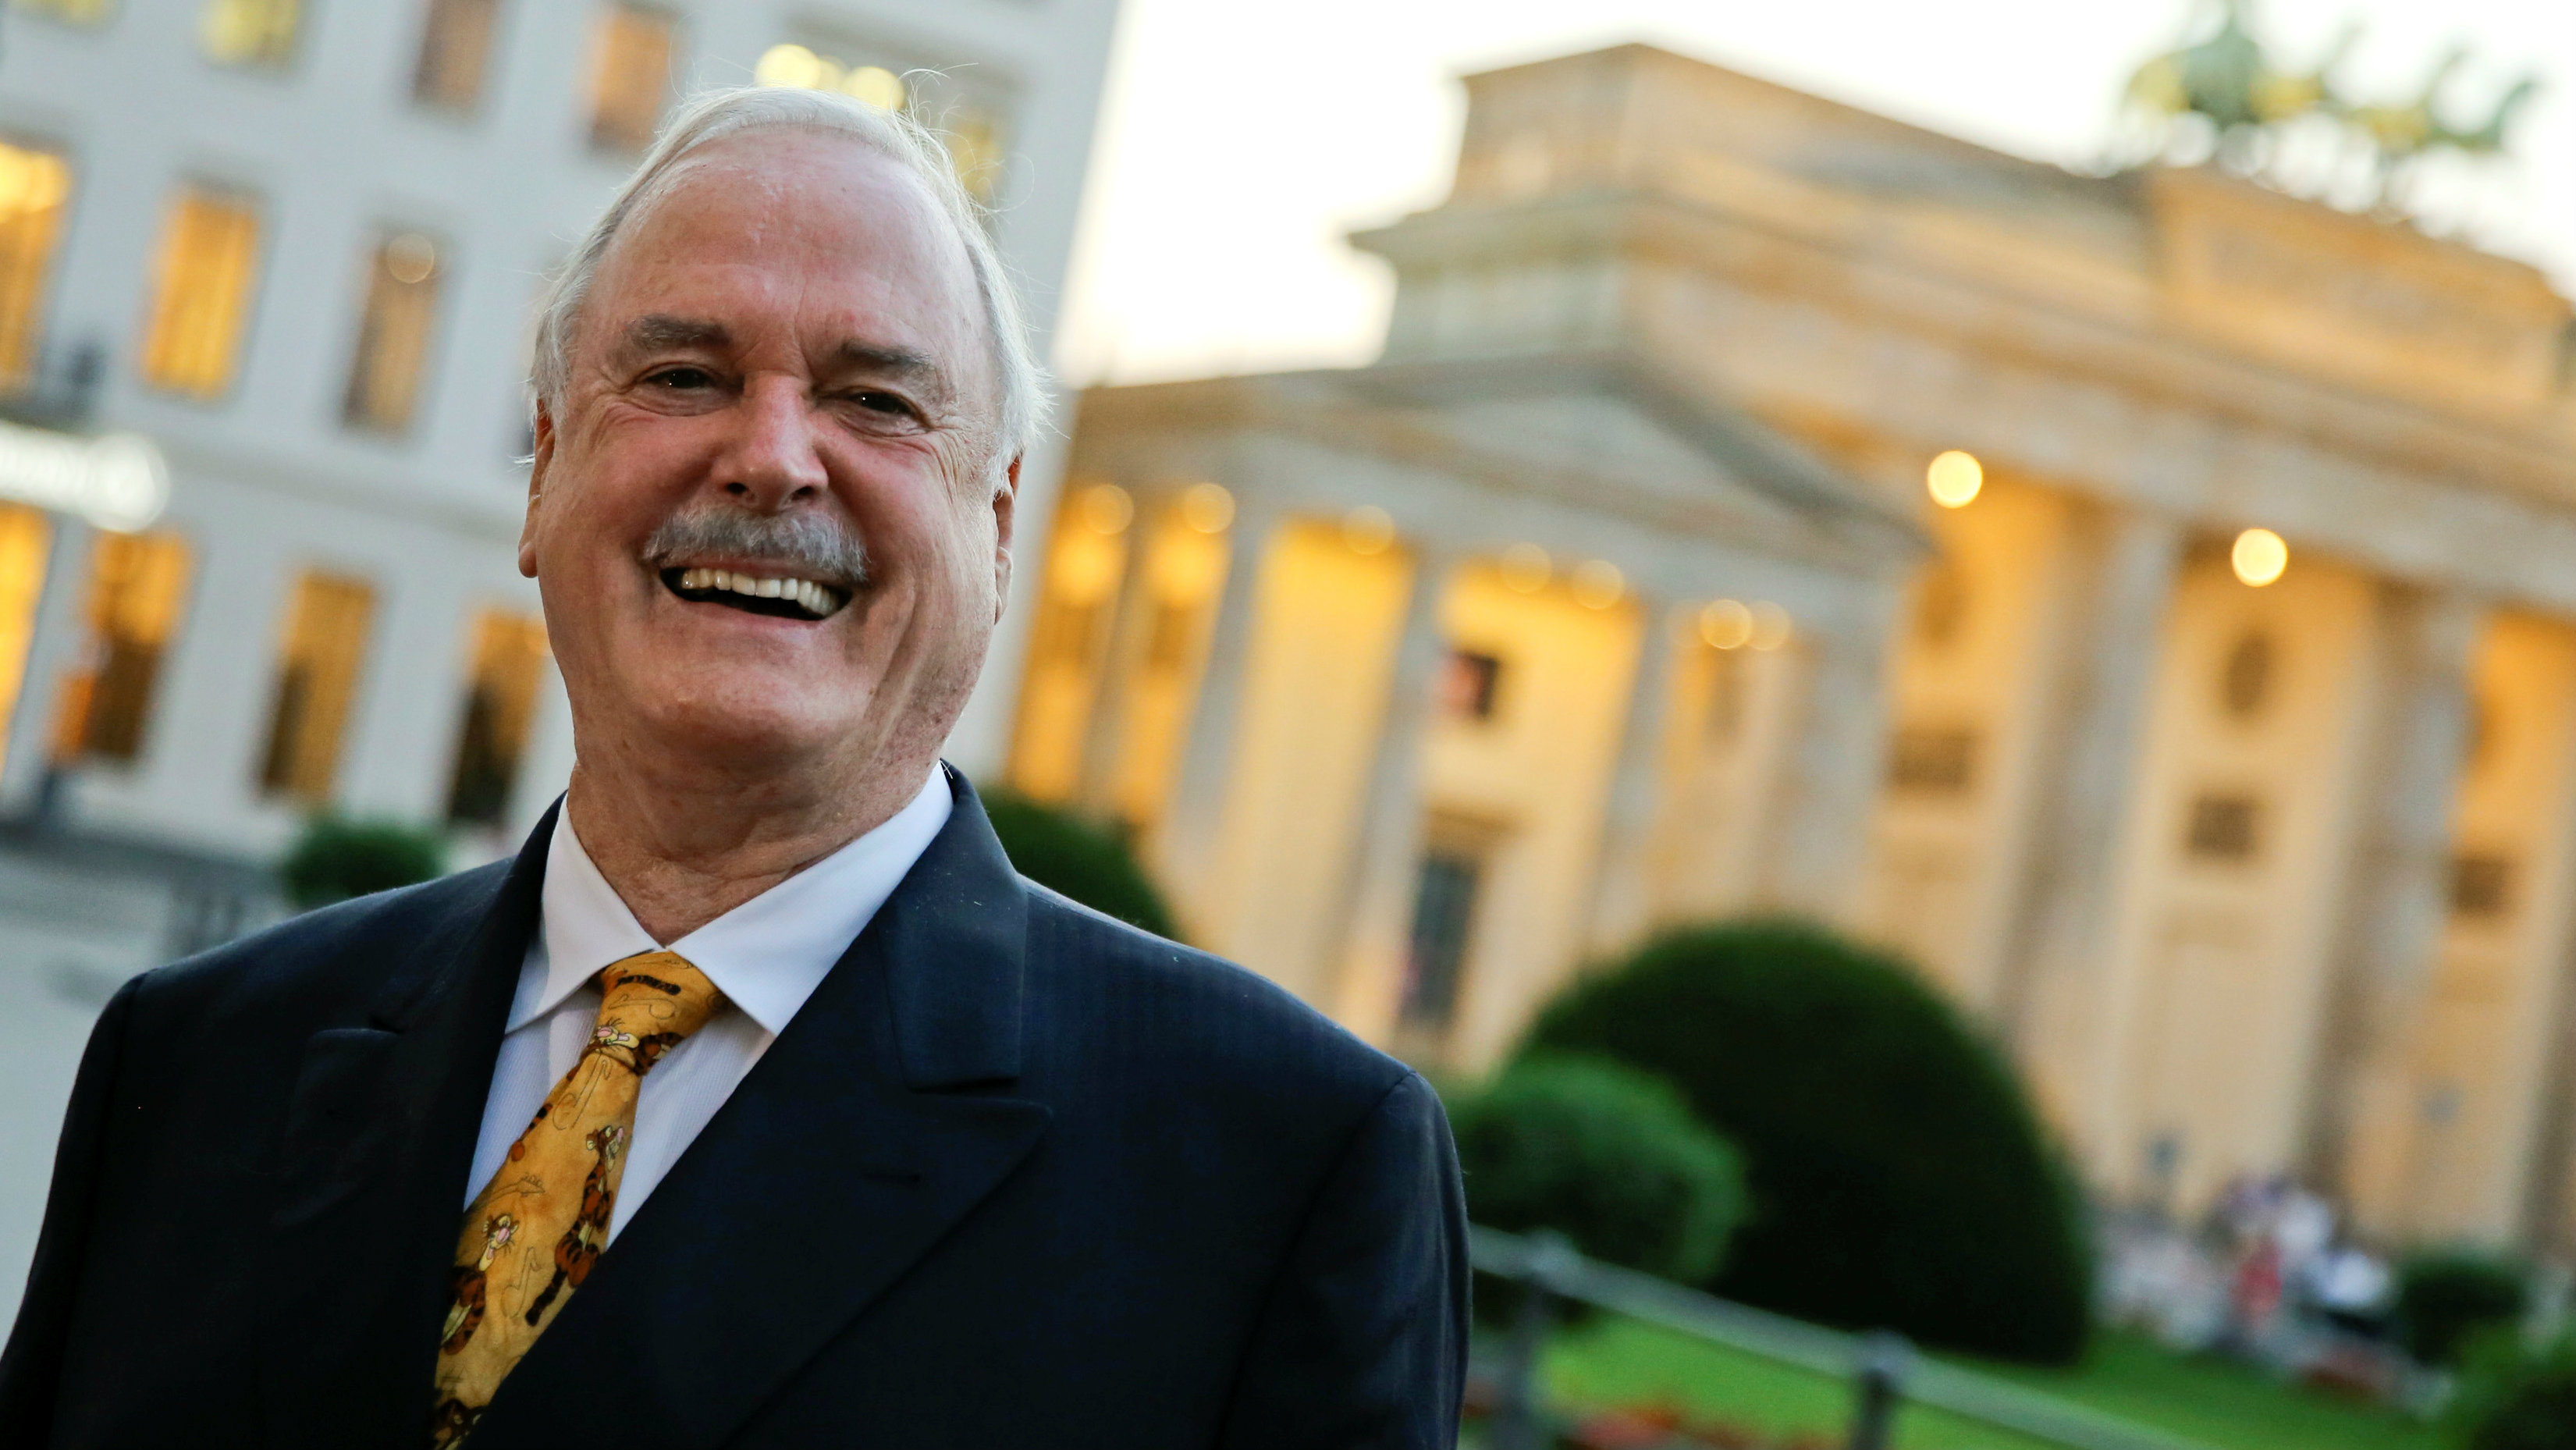 British actor John Cleese poses in front of the Brandenburg Gate ahead of the Rose d'Or award ceremony where he will be awarded for his lifetime achievement in Berlin, Germany, September 13, 2016. REUTERS/Fabrizio Bensch